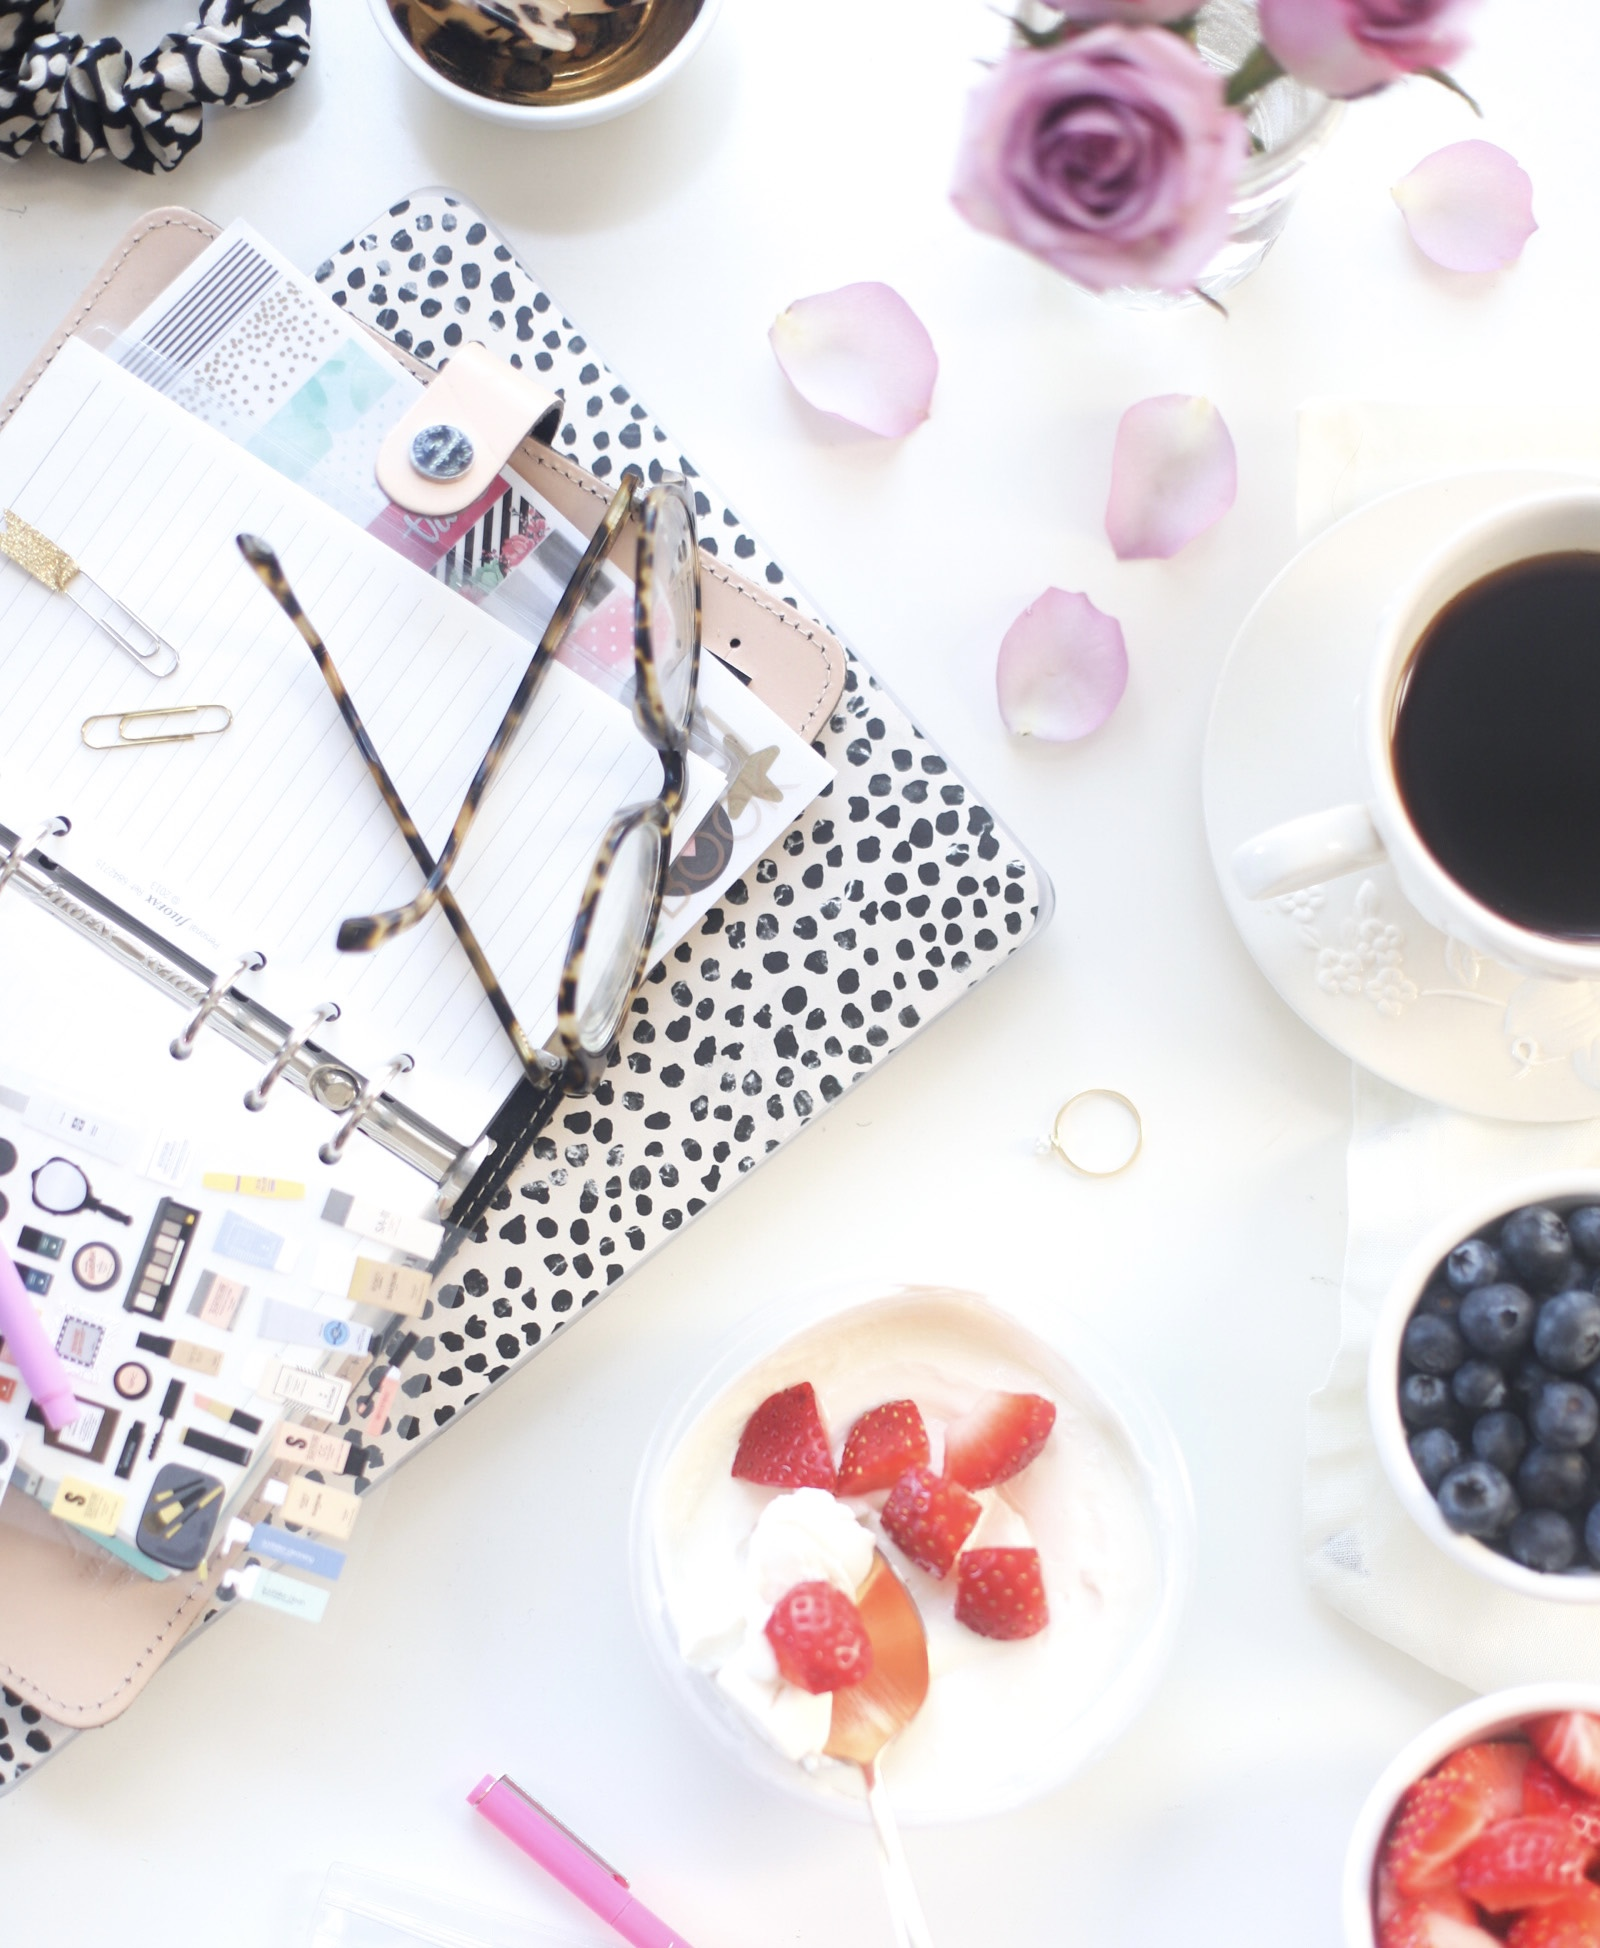 fruits, notebook, coffee on the table for The Best Labor Day Weekend Sales